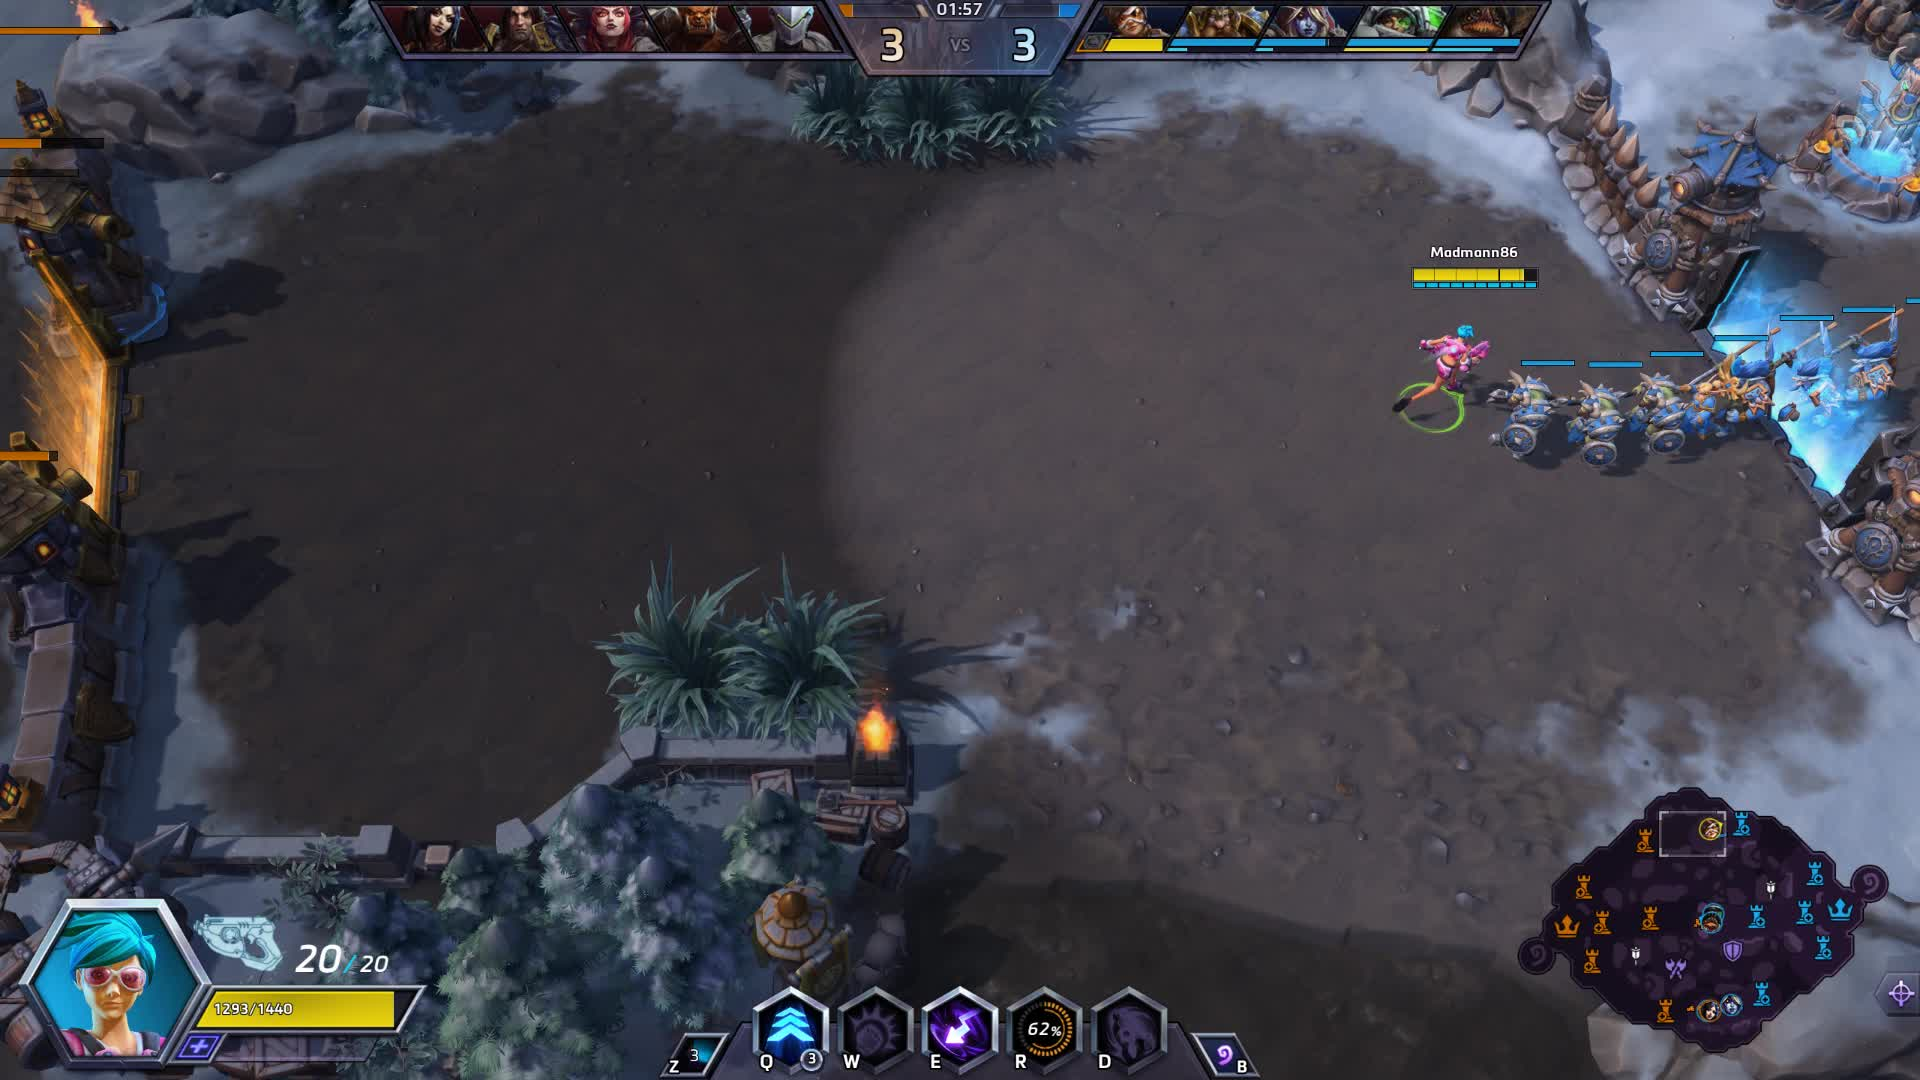 heroesofthestorm, Heroes of the Storm 2018.10.14 - 20.12.11.03.DVR-1 GIFs